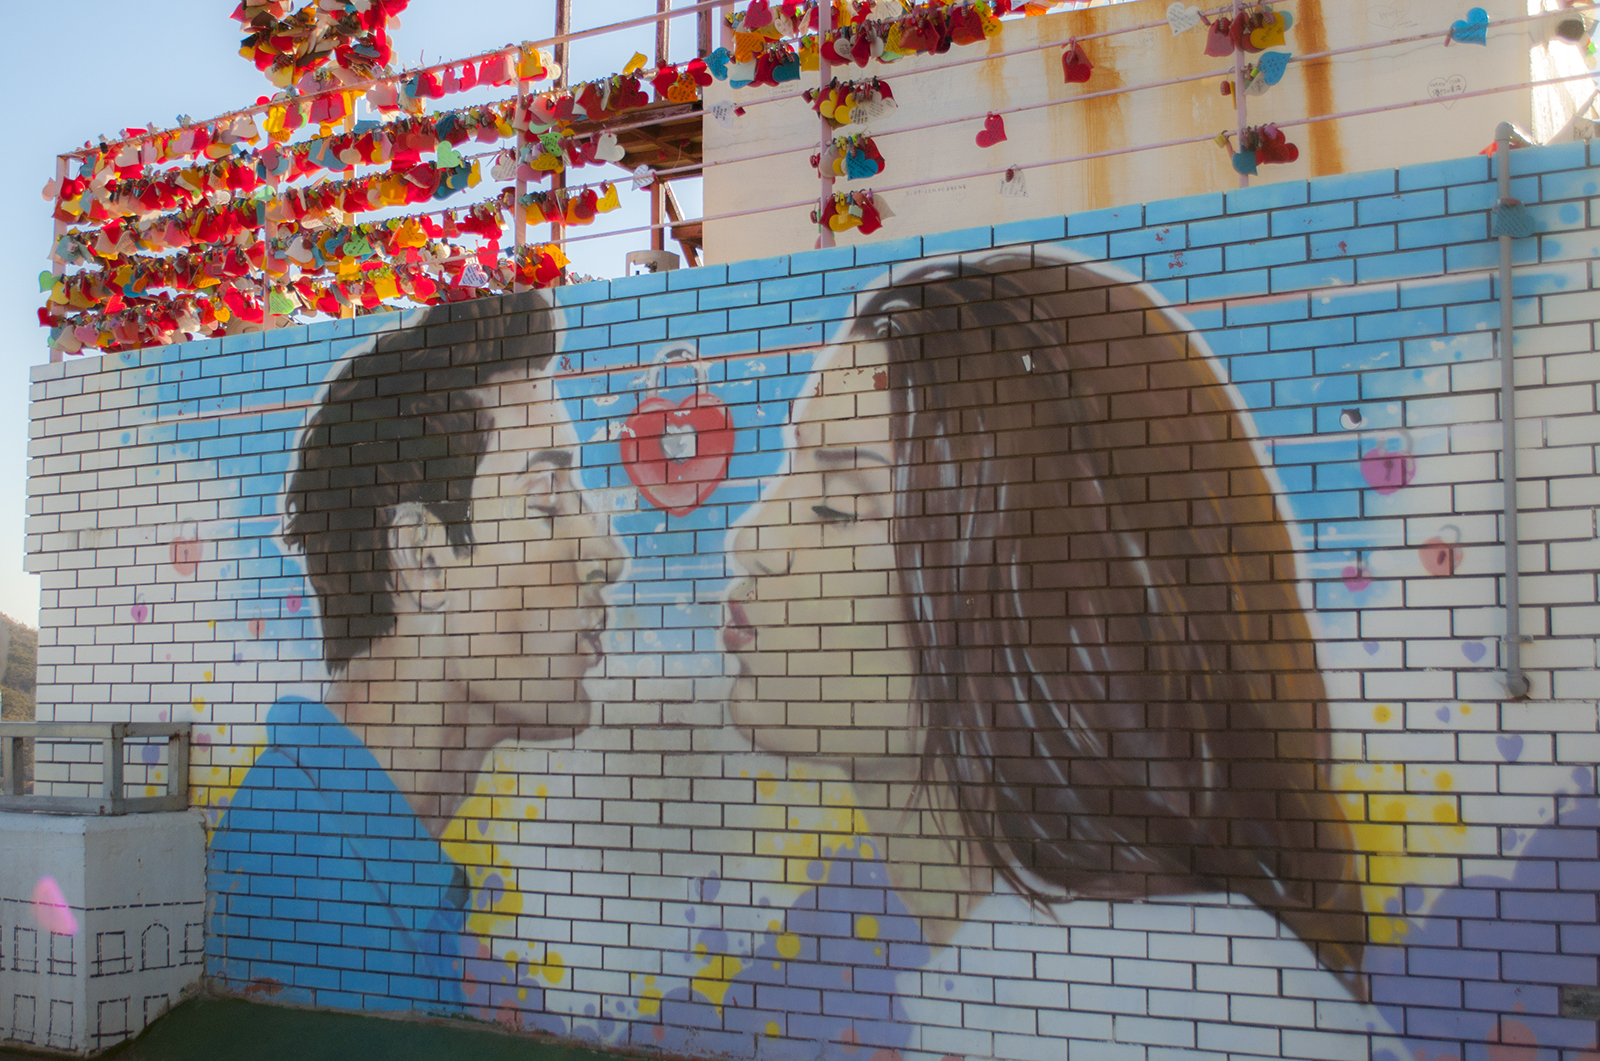 kiss_art_gamcheon_culture_village_busan